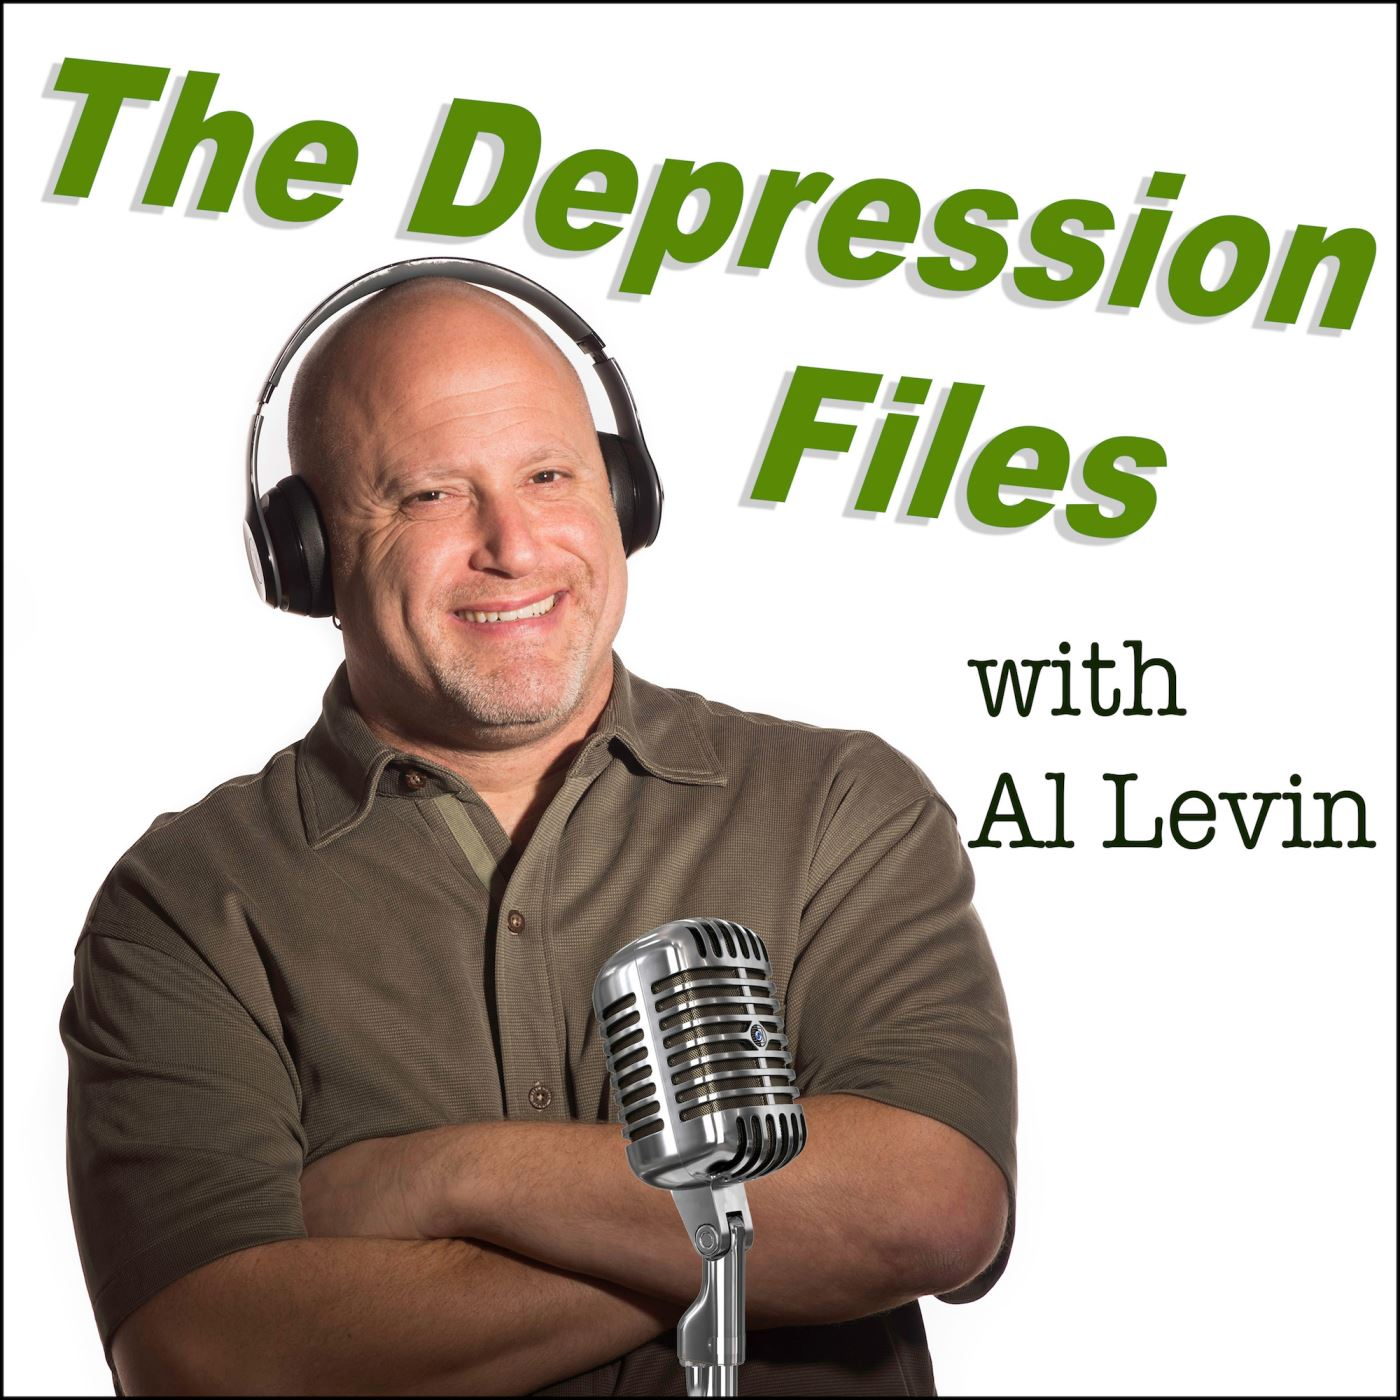 The Depression Files